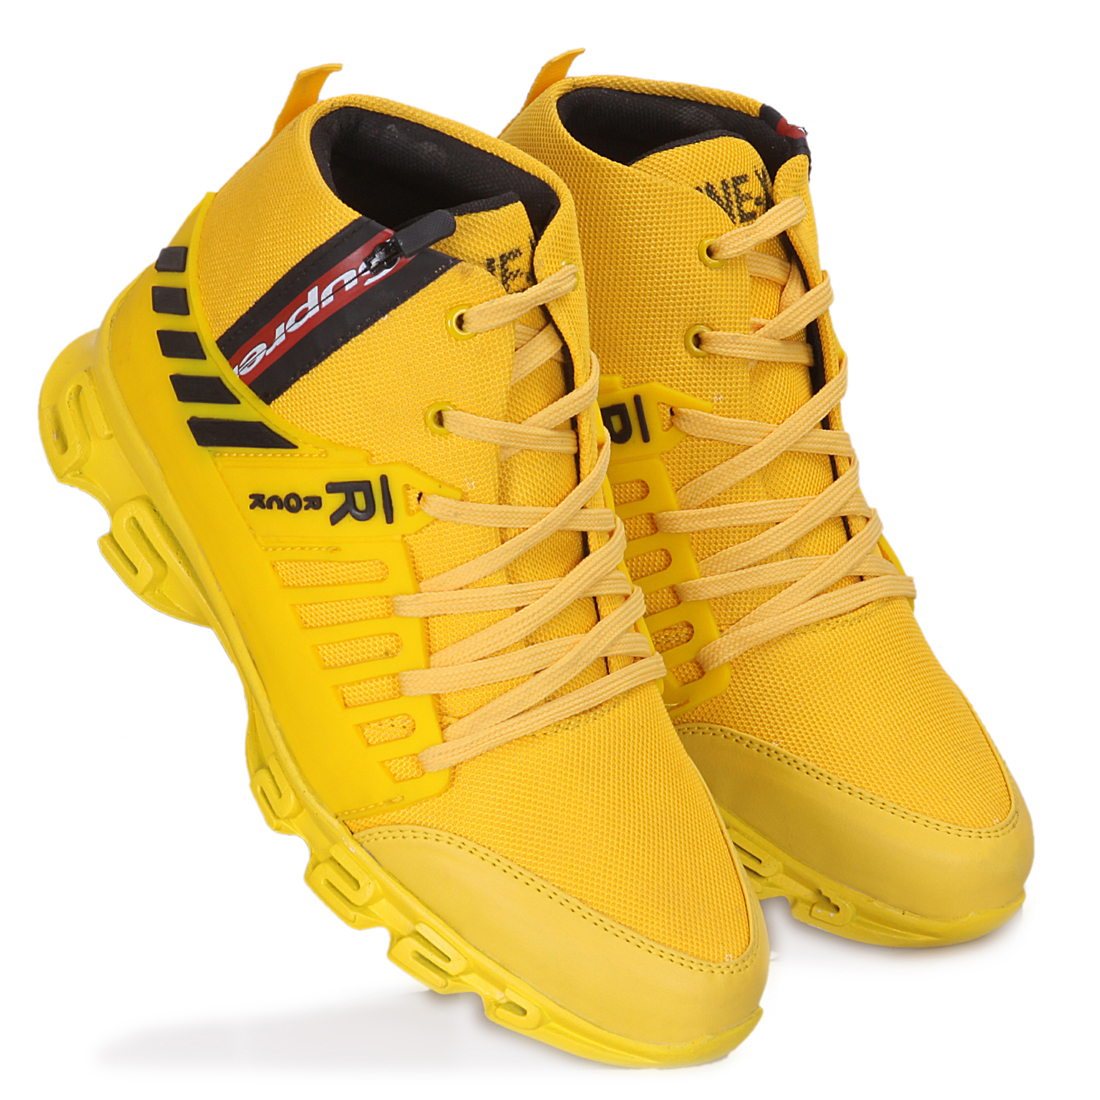 IMCOLUS379A.352_YELLOW FANCY & STYLESH ENGLISH MEDIUM Sports Shoes FOR MEN'S IMCOLUS379A.352_YLO (YELLOW, 7-10, 4 PAIR)